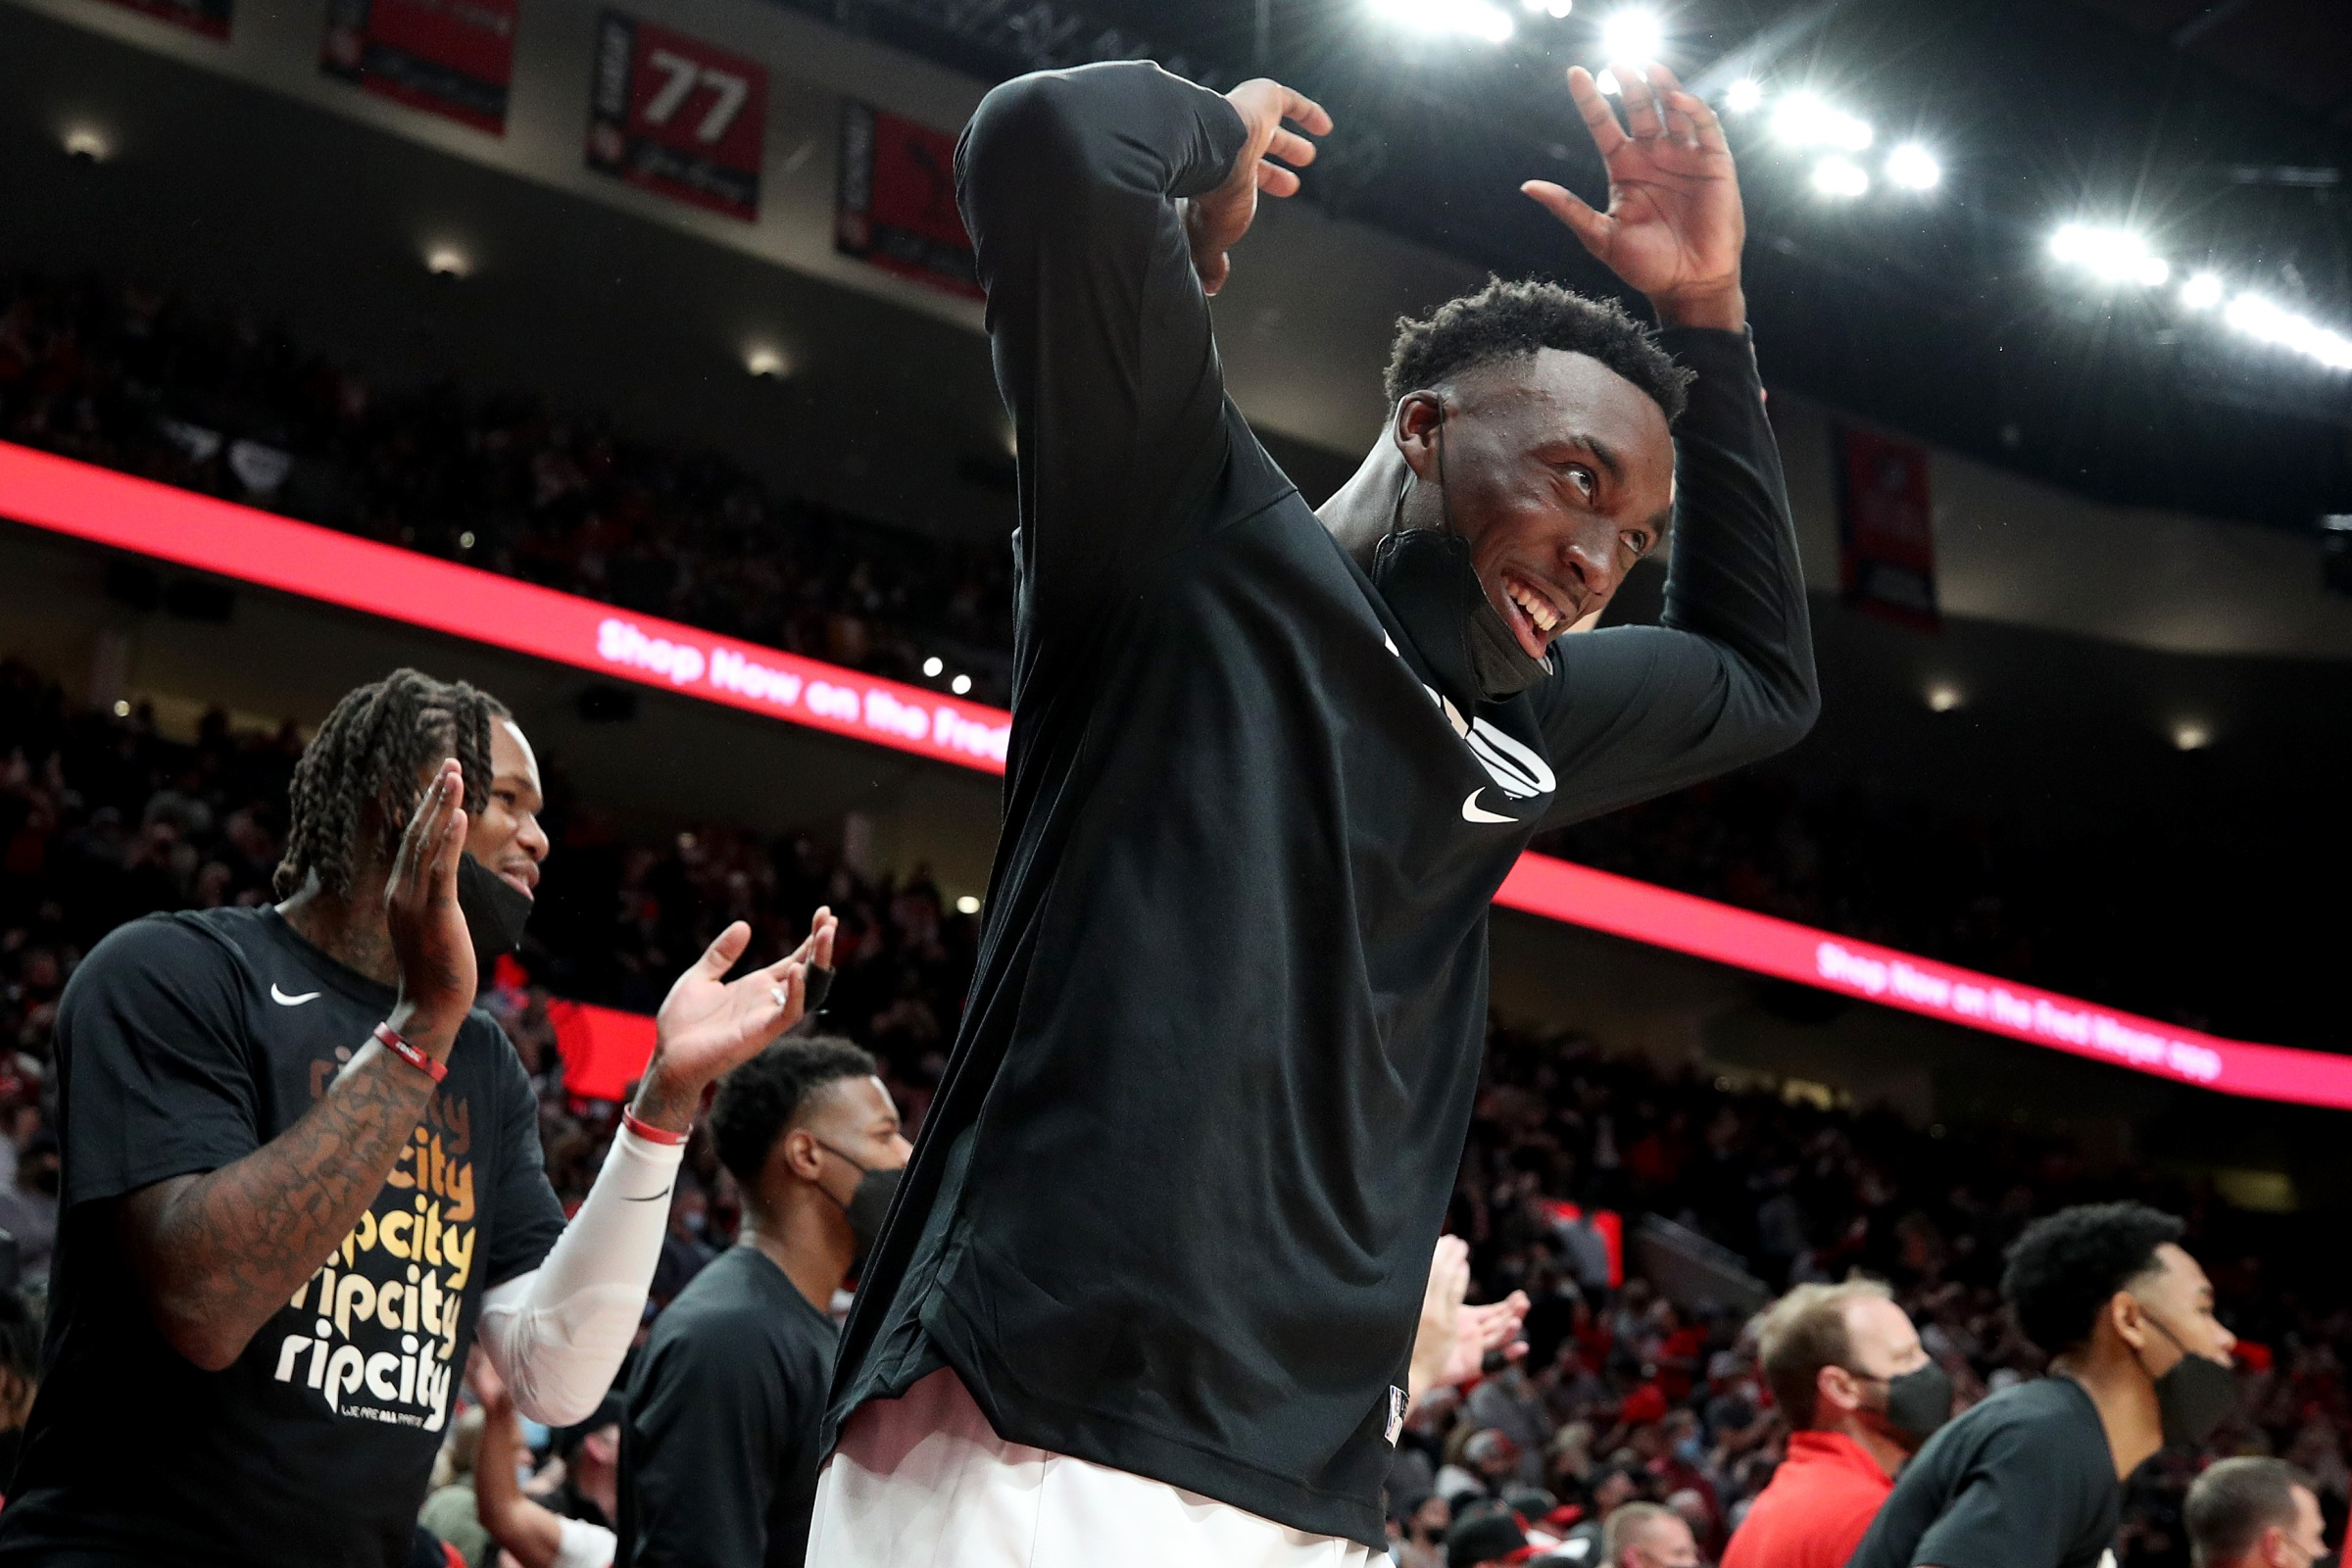 PORTLAND, OREGON - OCTOBER 20: Nassir Little #9 of the Portland Trail Blazers reacts during the fourth quarter against the Sacramento Kings at Moda Center on October 20, 2021 in Portland, Oregon. NOTE TO USER: User expressly acknowledges and agrees that, by downloading and or using this photograph, User is consenting to the terms and conditions of the Getty Images License Agreement. (Photo by Steph Chambers/Getty Images)